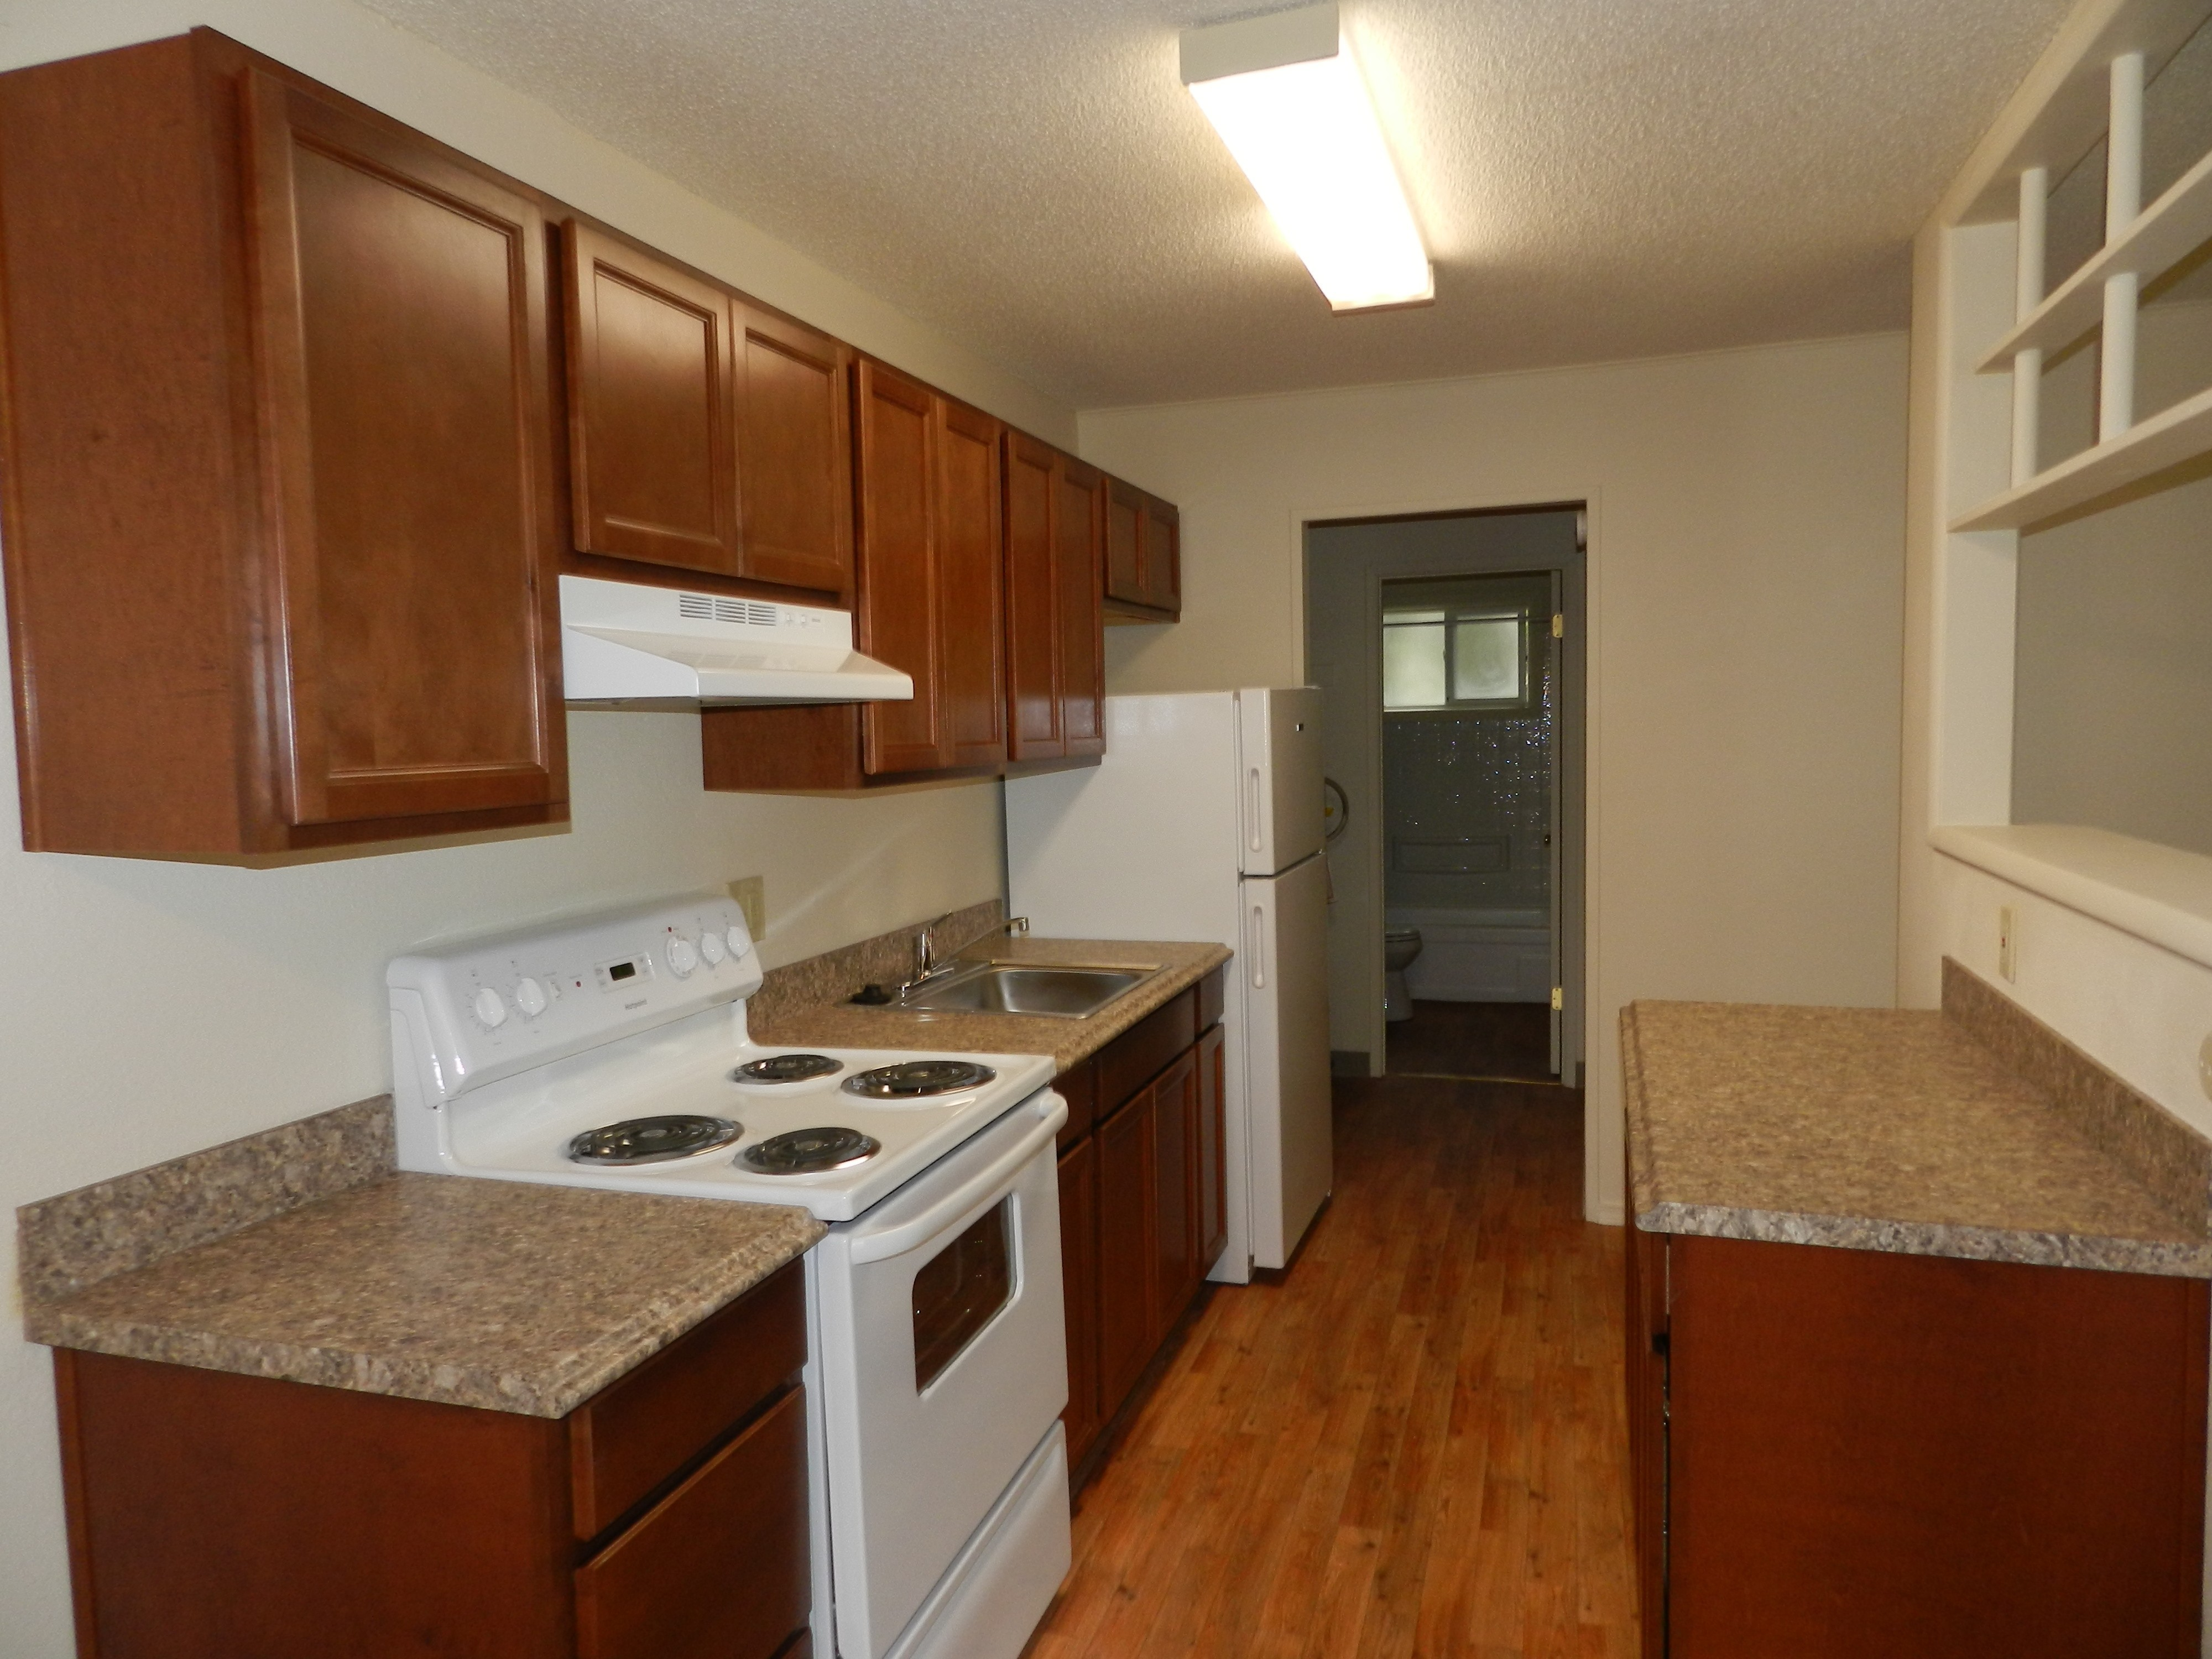 Raleigh Firs Apartments for Rent 6239 SW Beaverton Hillsdale Hwy